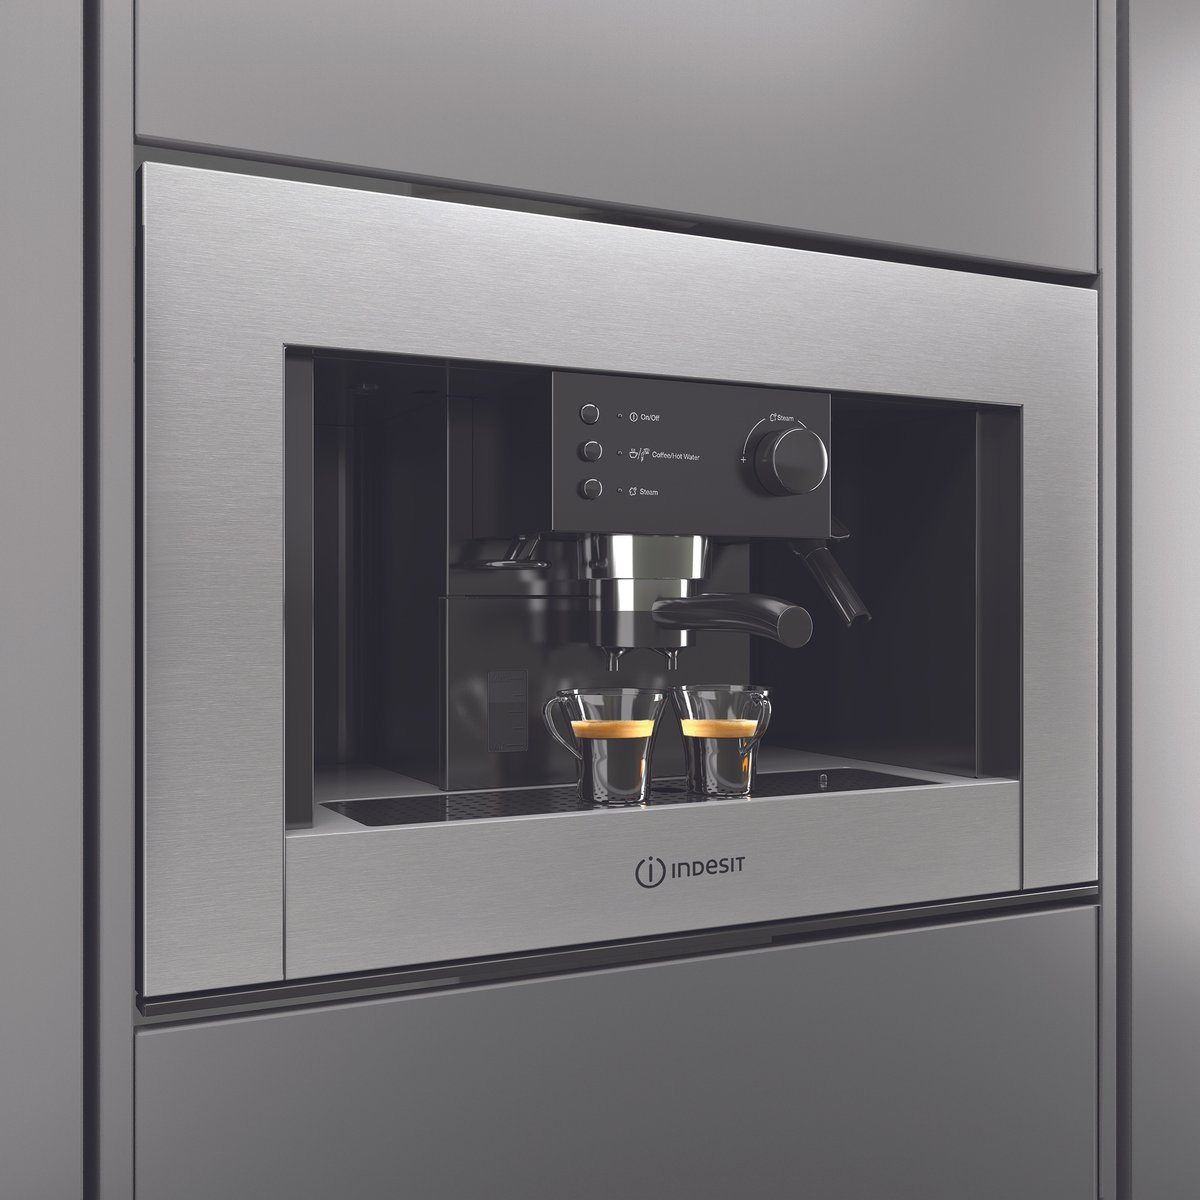 test Twitter Media - The Aria built-in coffee machine from @IndesitUK is ideal for releasing space on busy worktops, allowing for more room to prepare and cook delicious meals #Indesit #CoffeeMachine #BuiltInCoffeeMachine #WednesdayWisdom https://t.co/AQqwaQ39WS